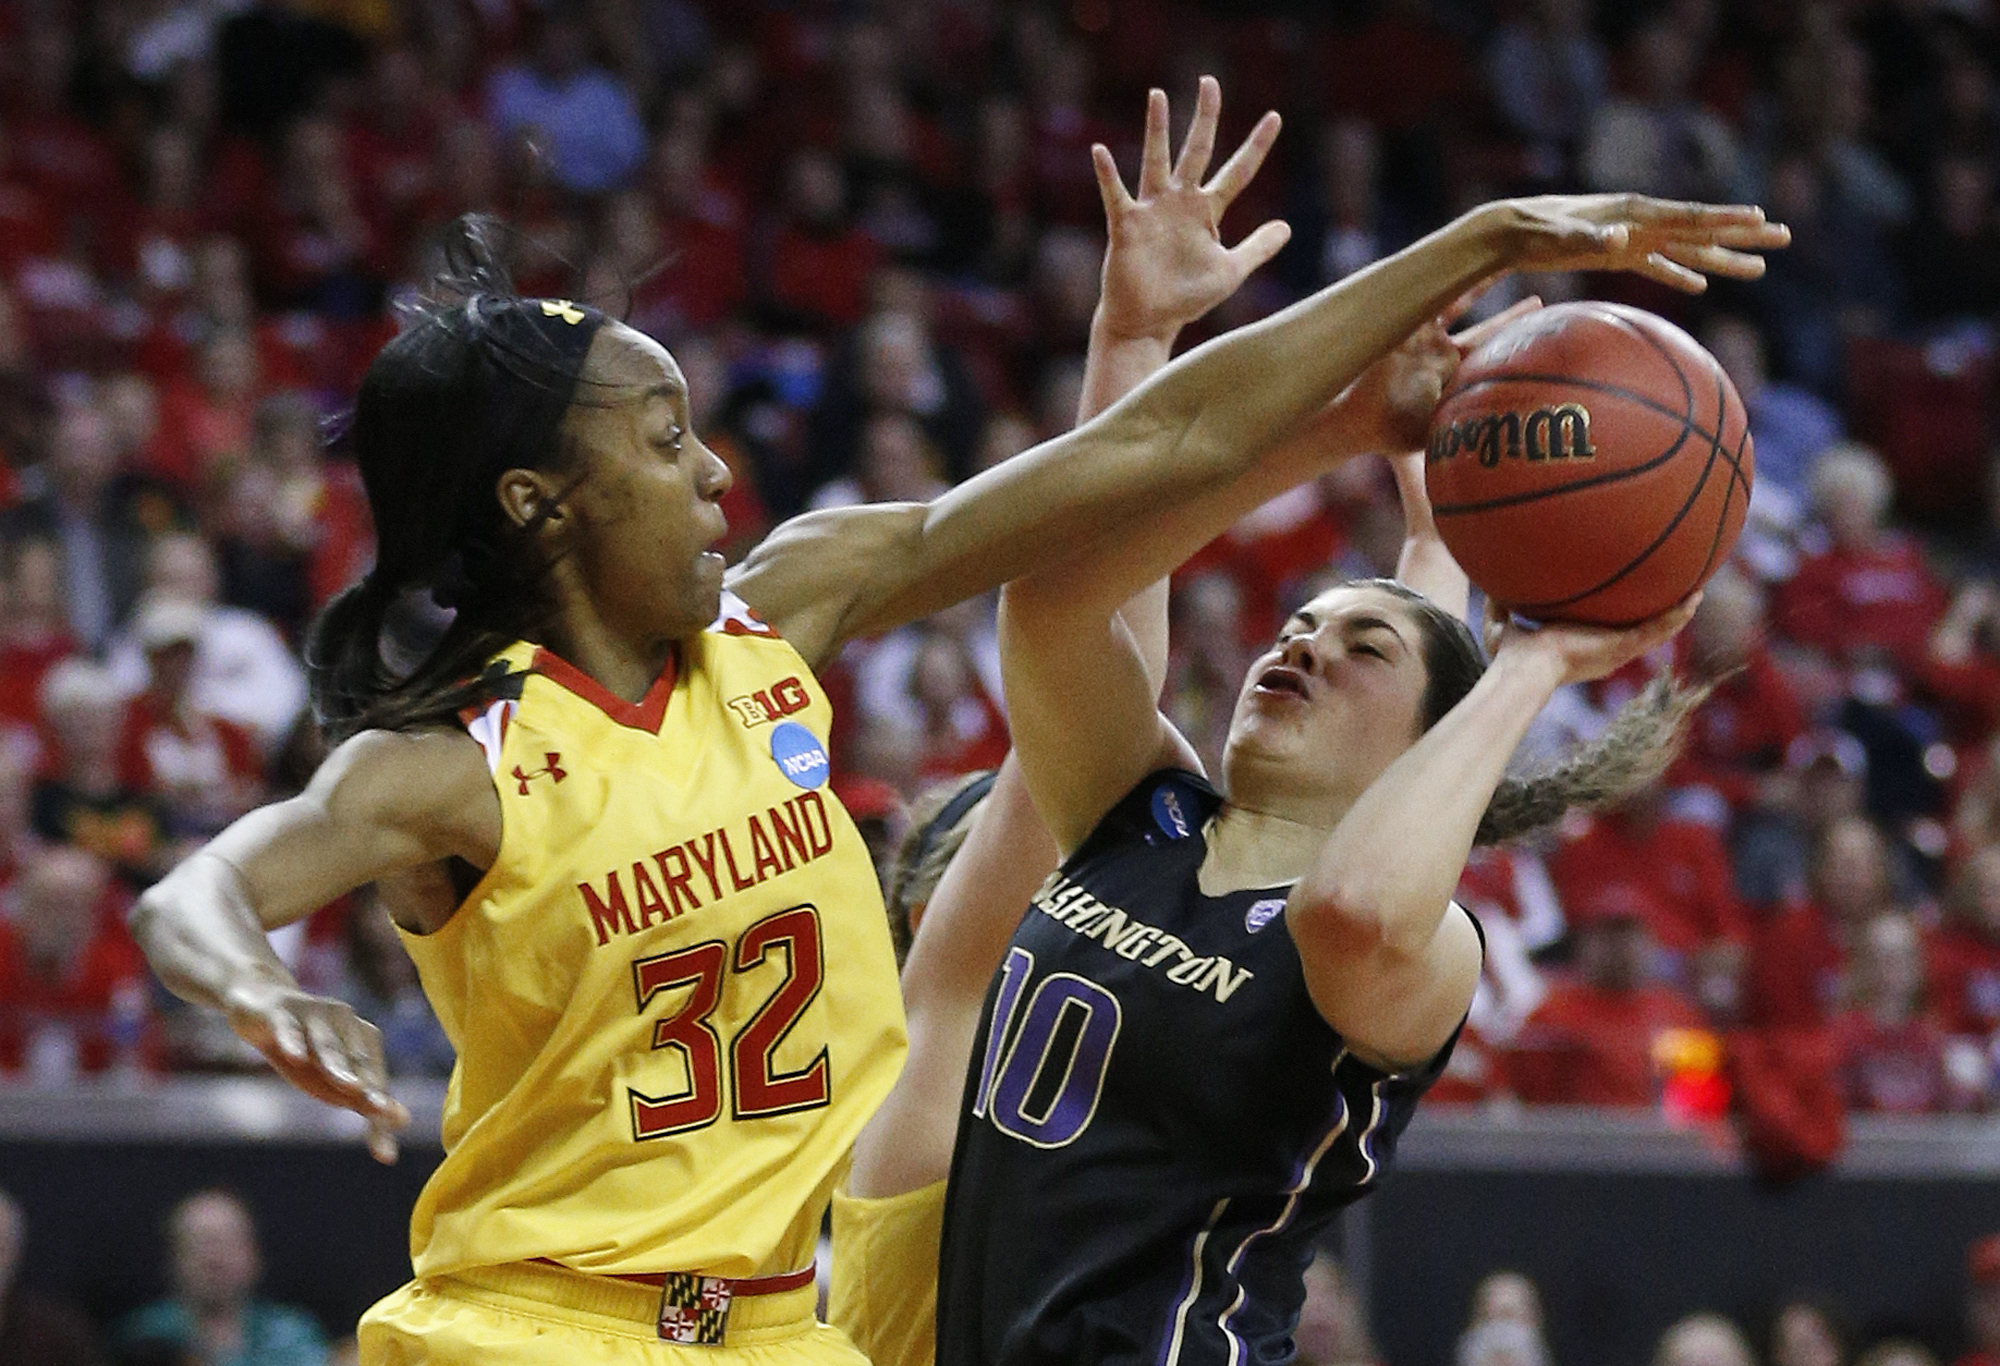 Maryland women eliminated from NCAA Tournament